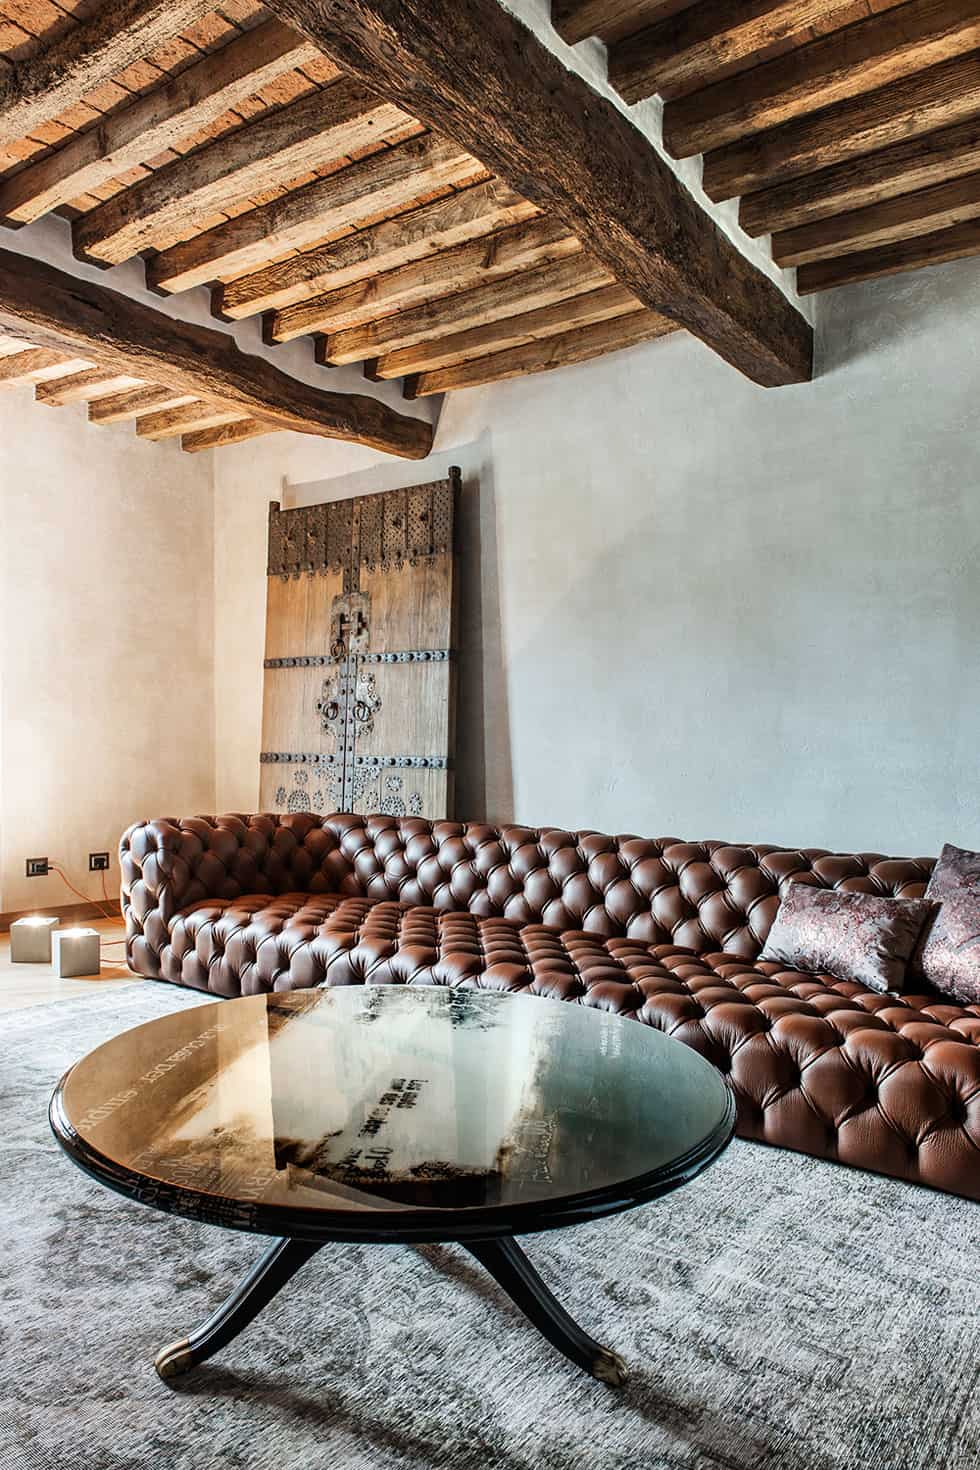 Rustic modern home in Crema, Italy